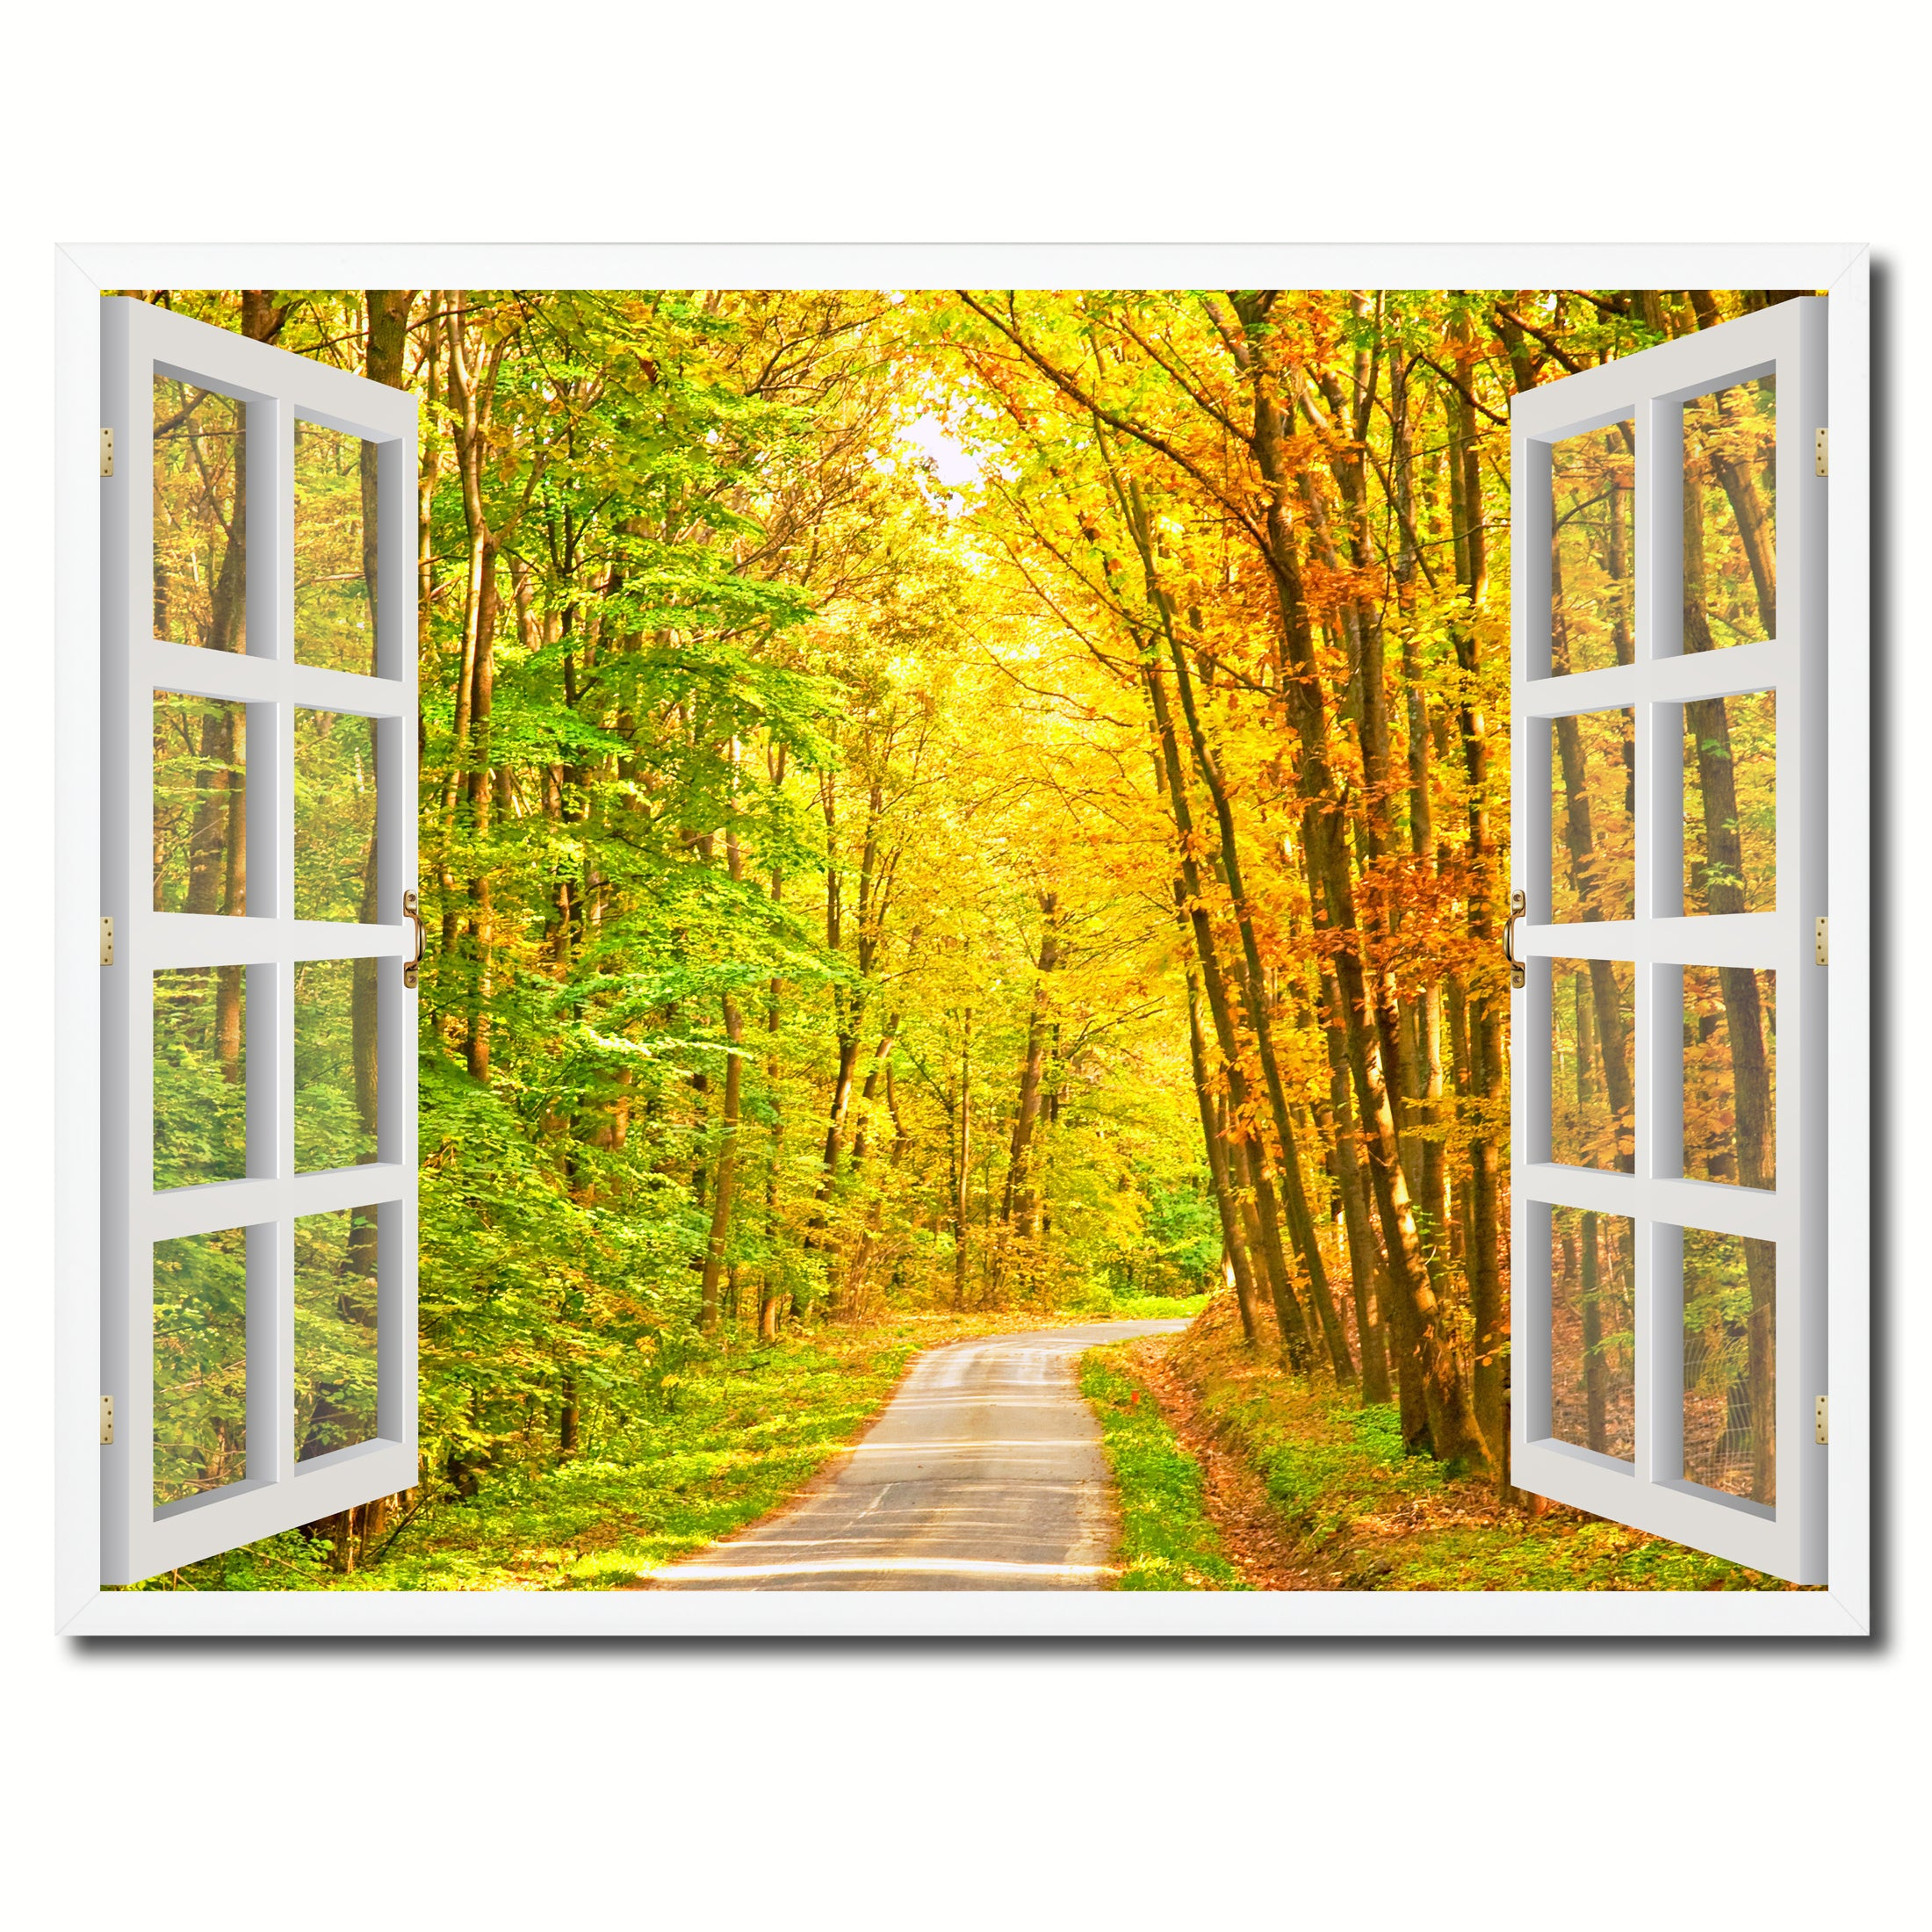 Pathway Autumn Park Fall Forest Picture Window Wall Art Home Decor ...